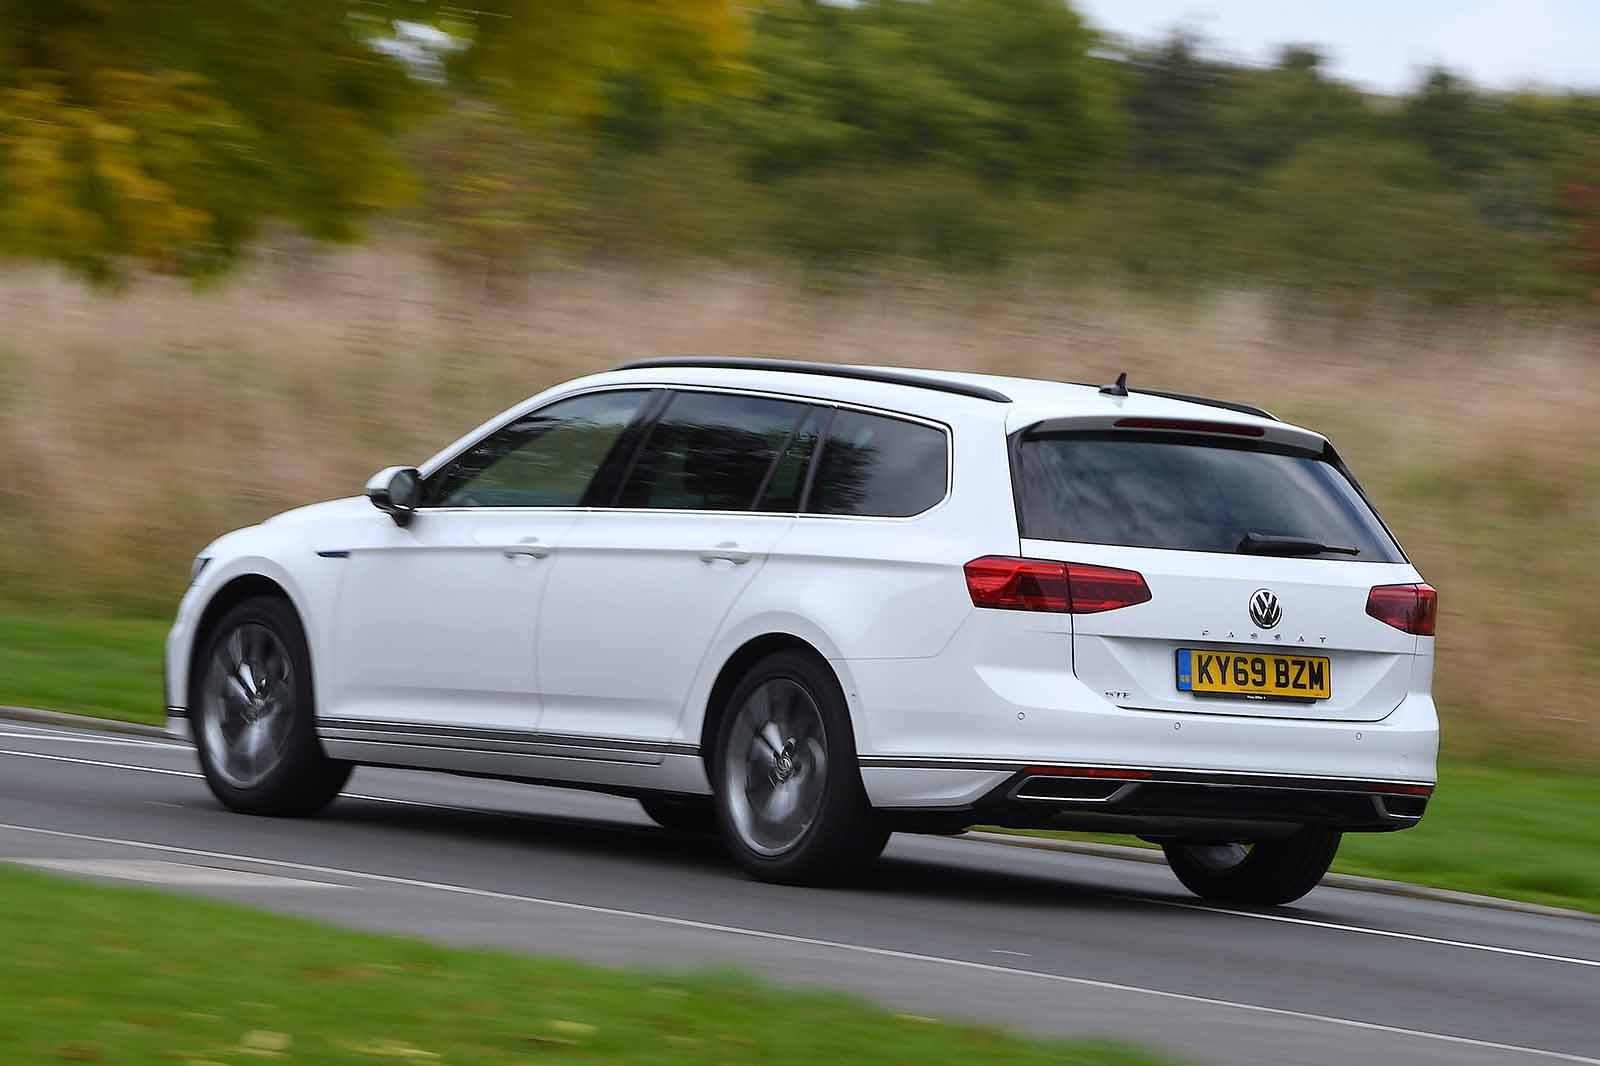 Volkswagen Passat Estate GTE 2019 RHD rear tracking shot